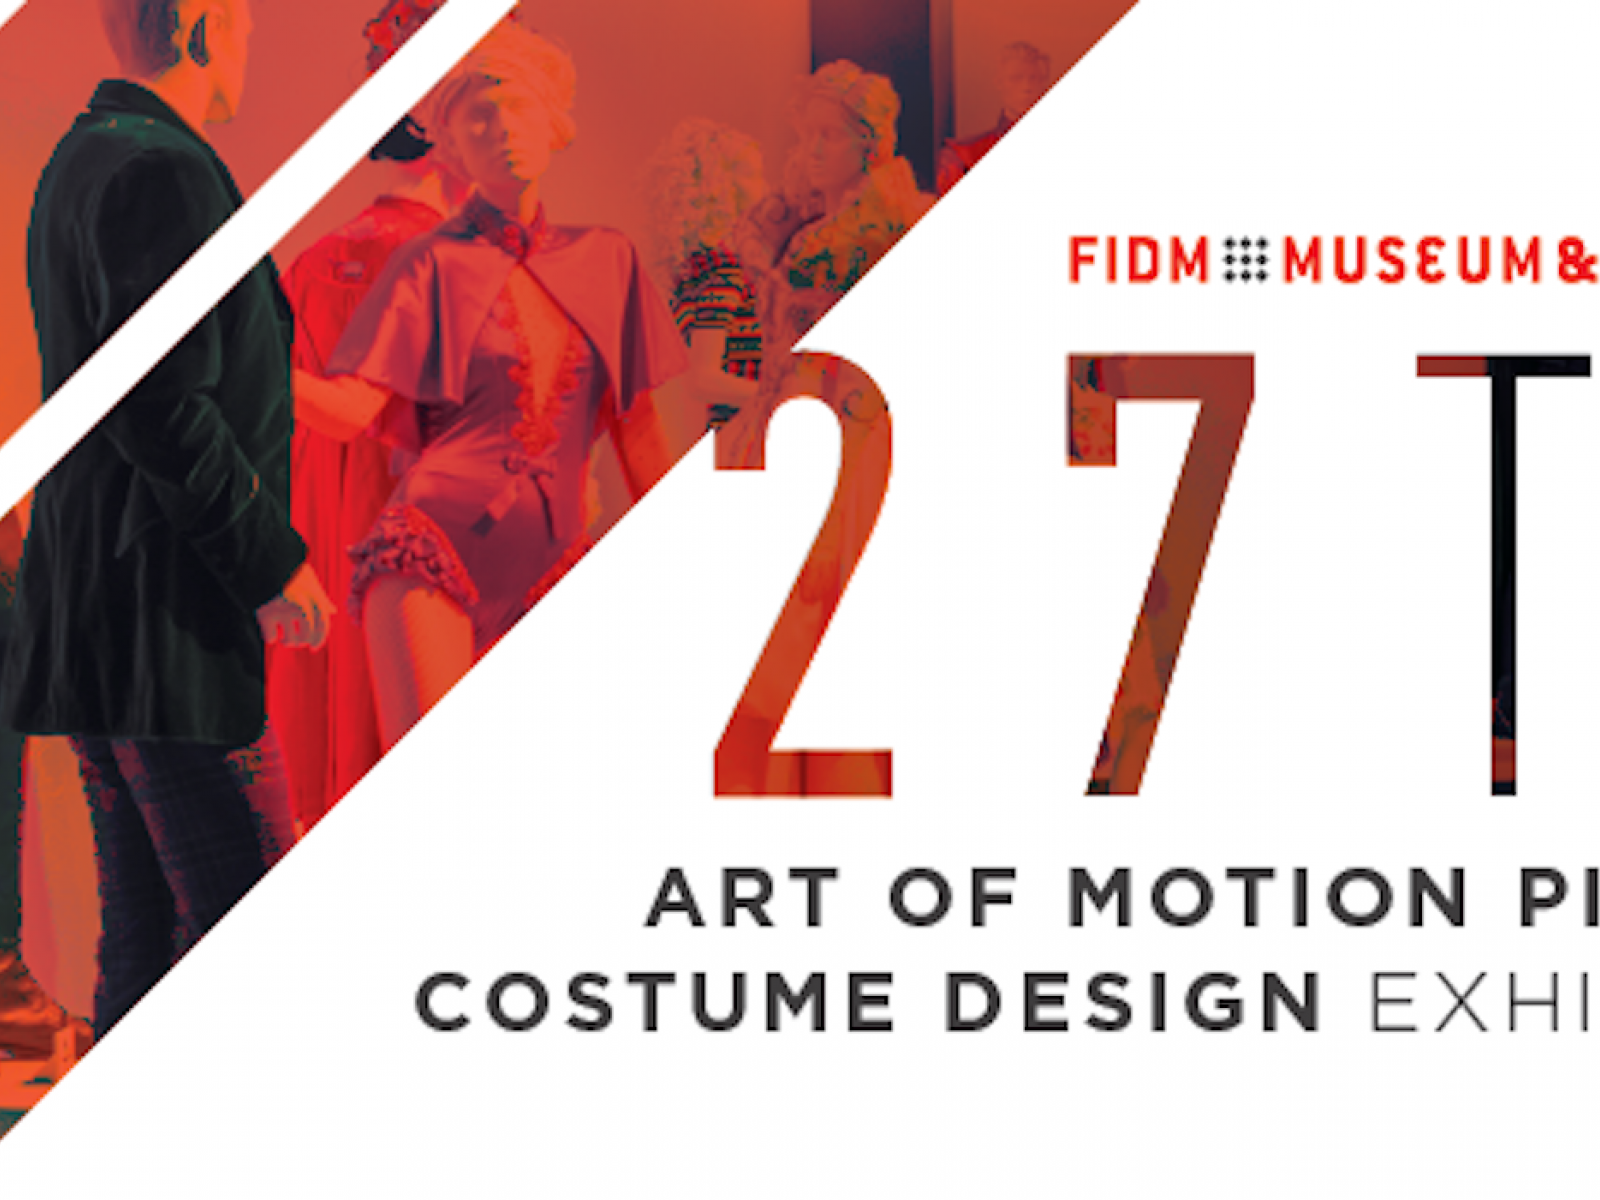 Main image for event titled 27th Art of Motion Picture Costume Design Exhibition